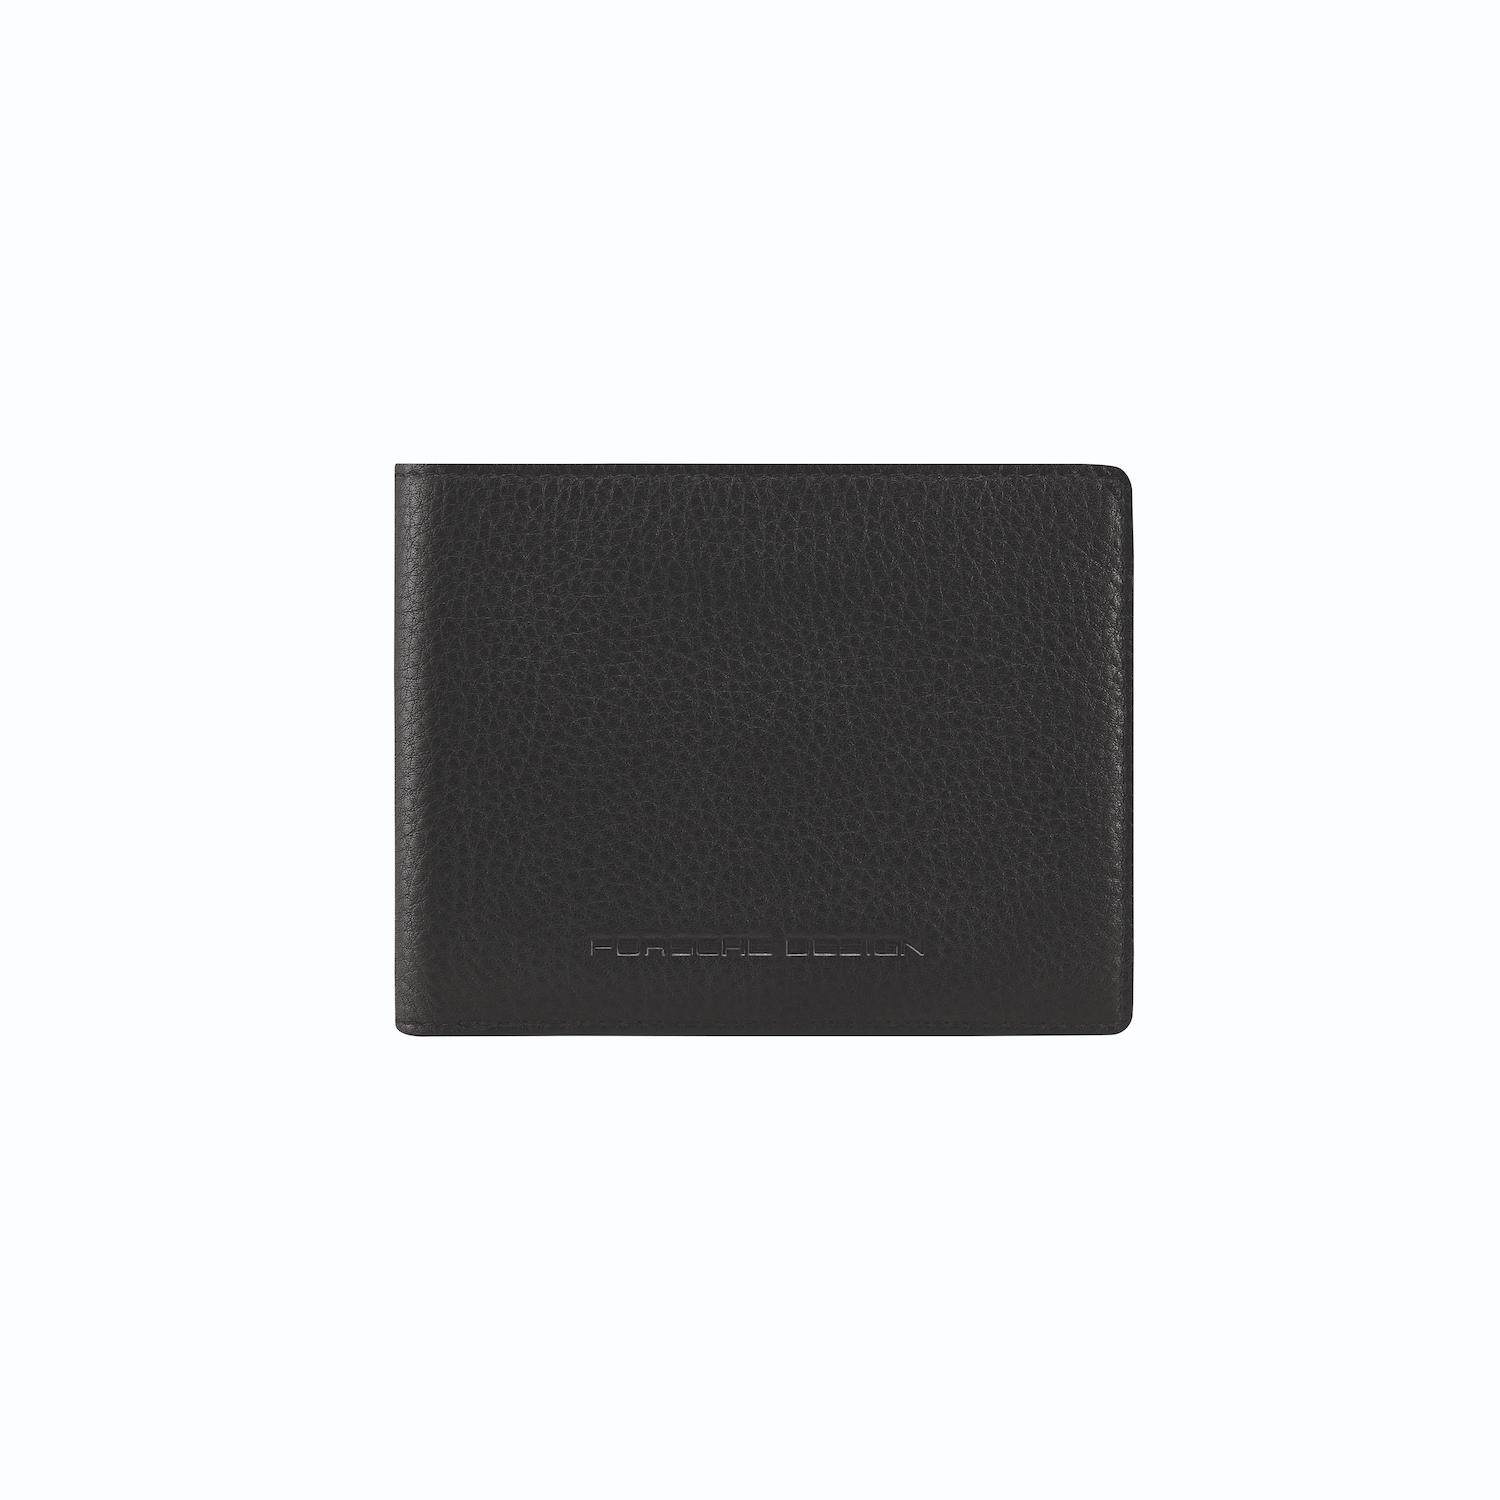 Pd Business Slg Wallet 3 CC by Brics (Color: Black)